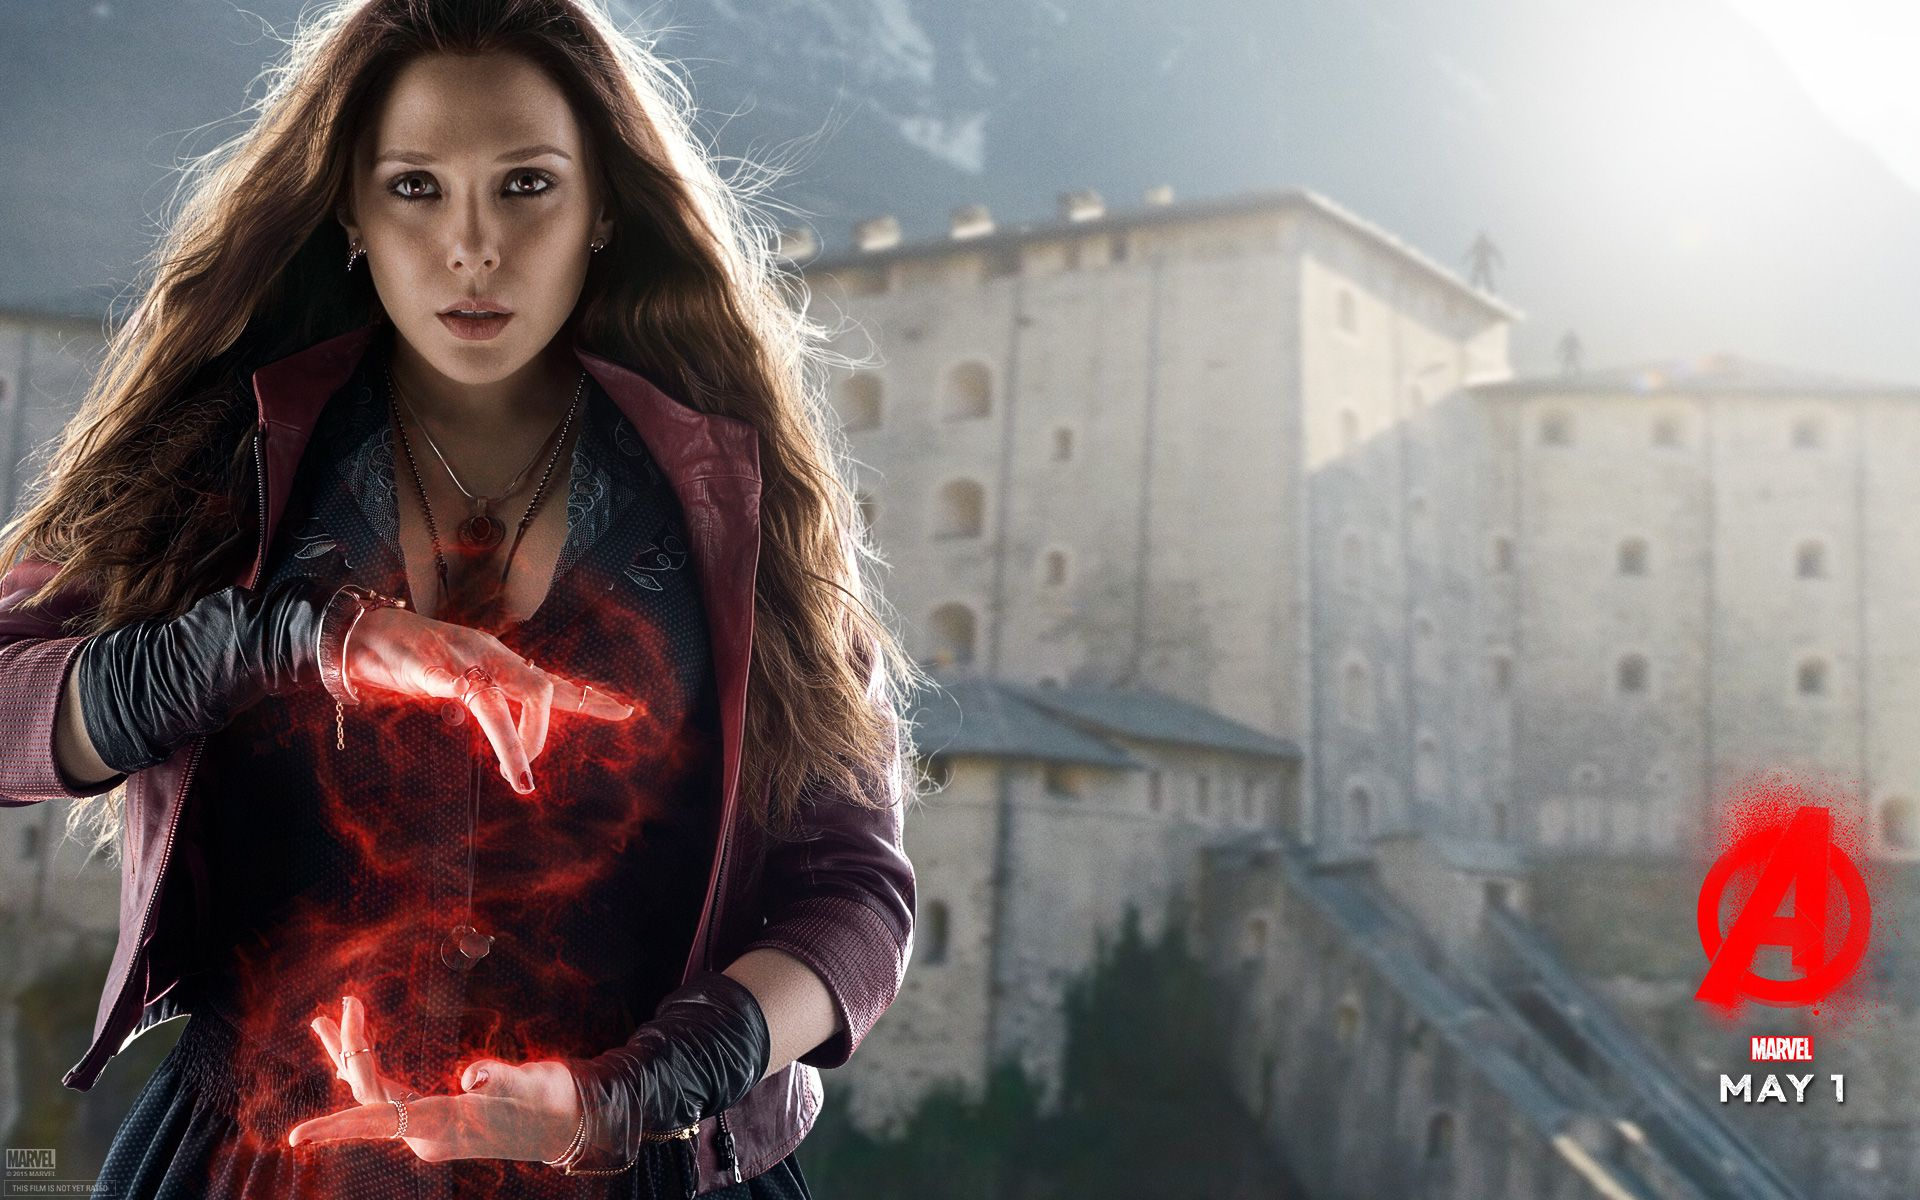 Must see Wallpaper Marvel Scarlet Witch - 5754f439d2e5df69453dad825d72aa78  You Should Have_195320.jpg